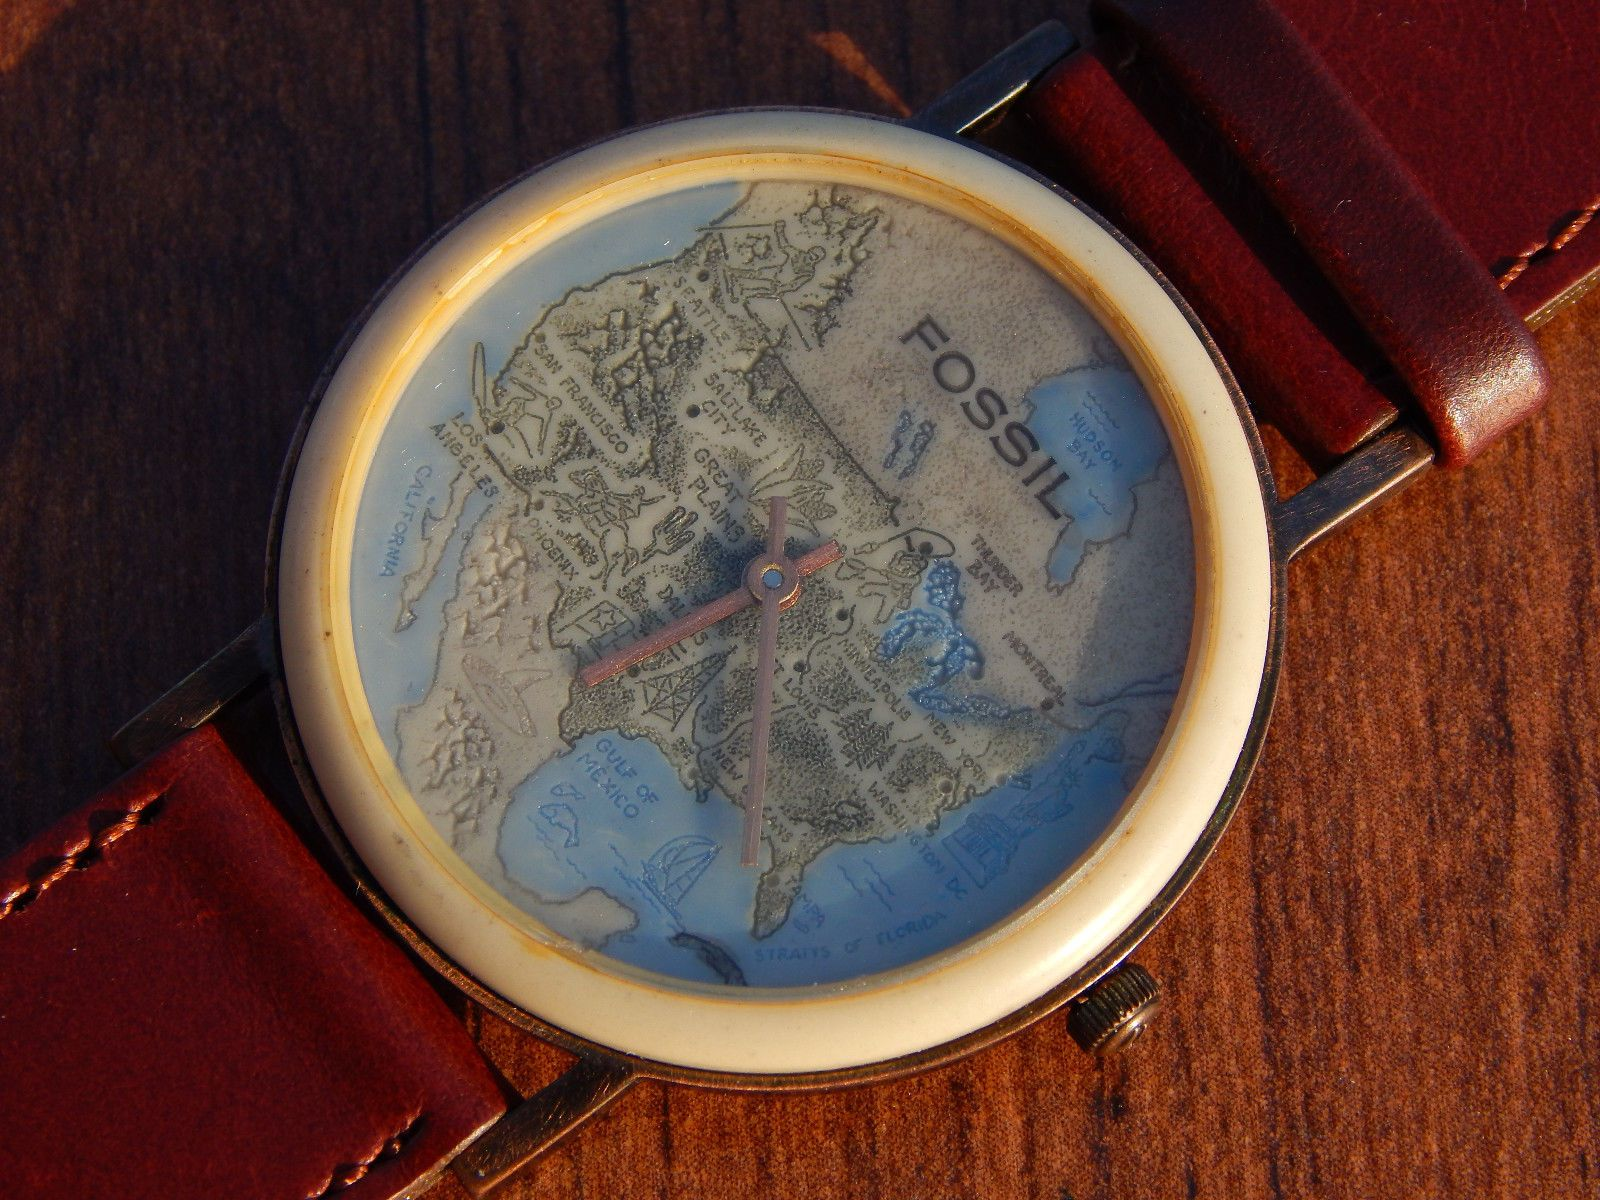 Ultra rare mens fossil stone rock globe map watch bw 6729 usa ultra rare mens fossil stone rock globe map watch bw 6729 usa mexico canada ebay gumiabroncs